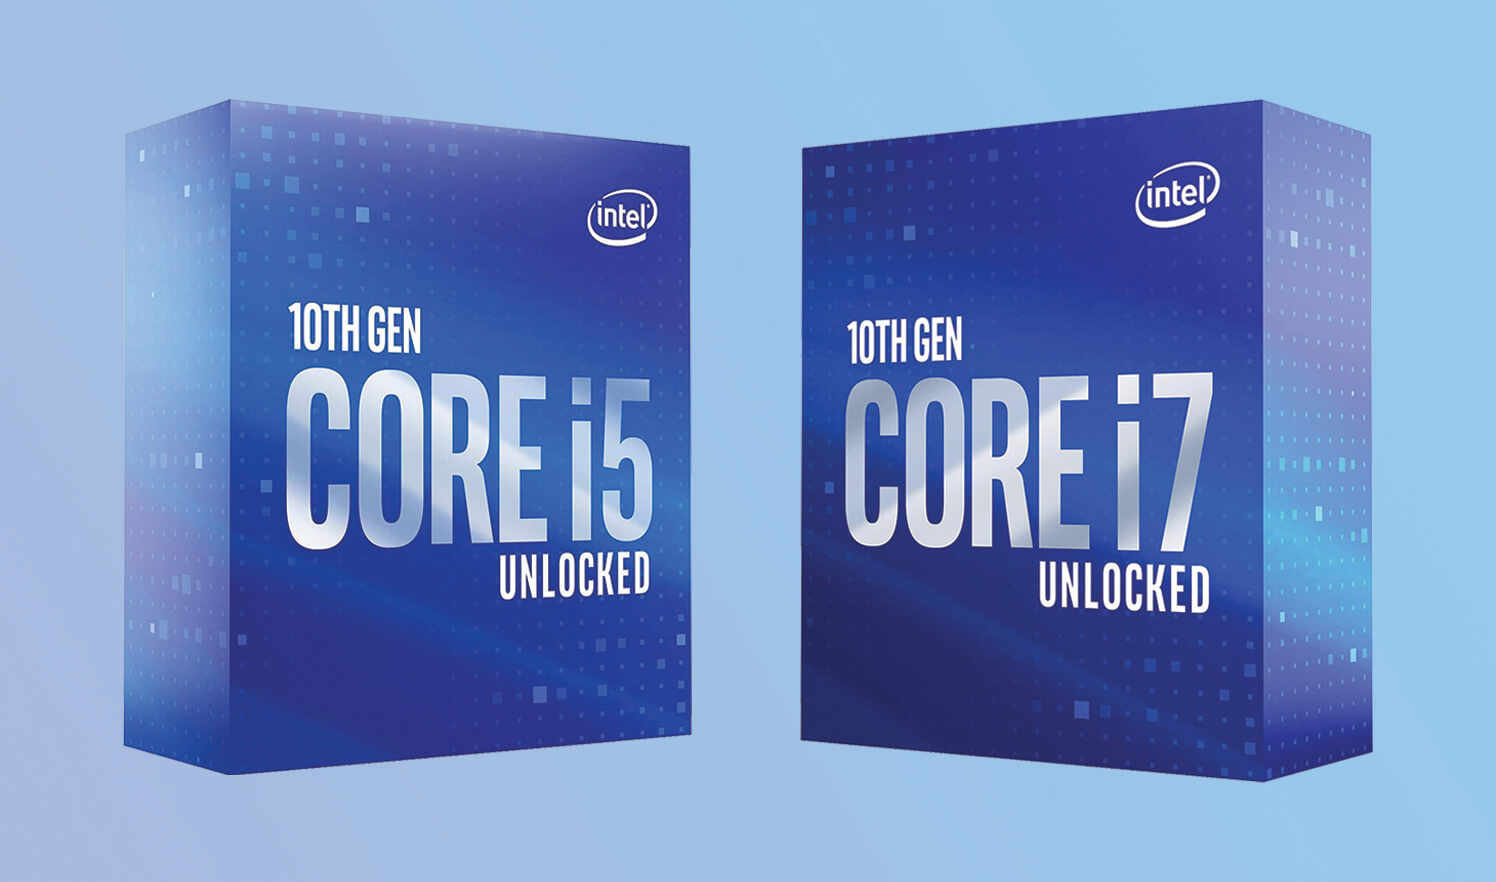 Best Intel Processors for Gaming